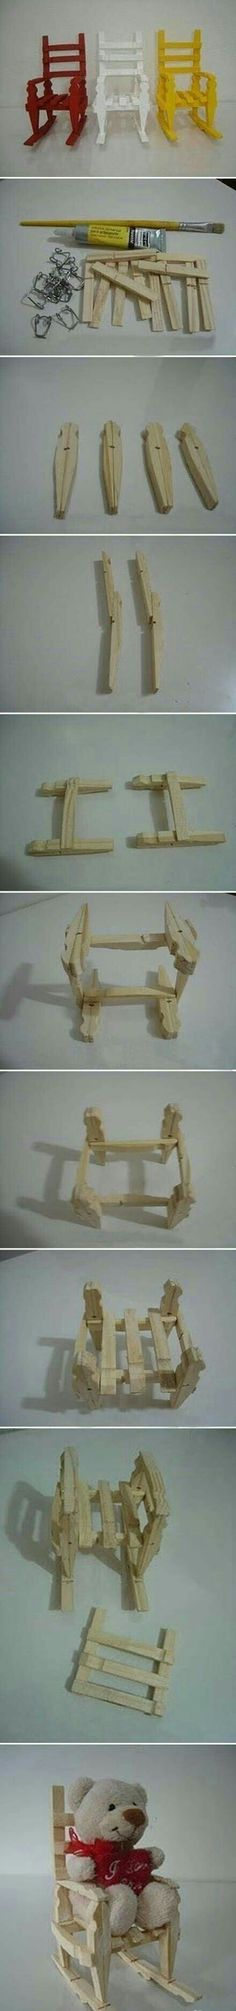 How cute are these chairs made with clothespins.